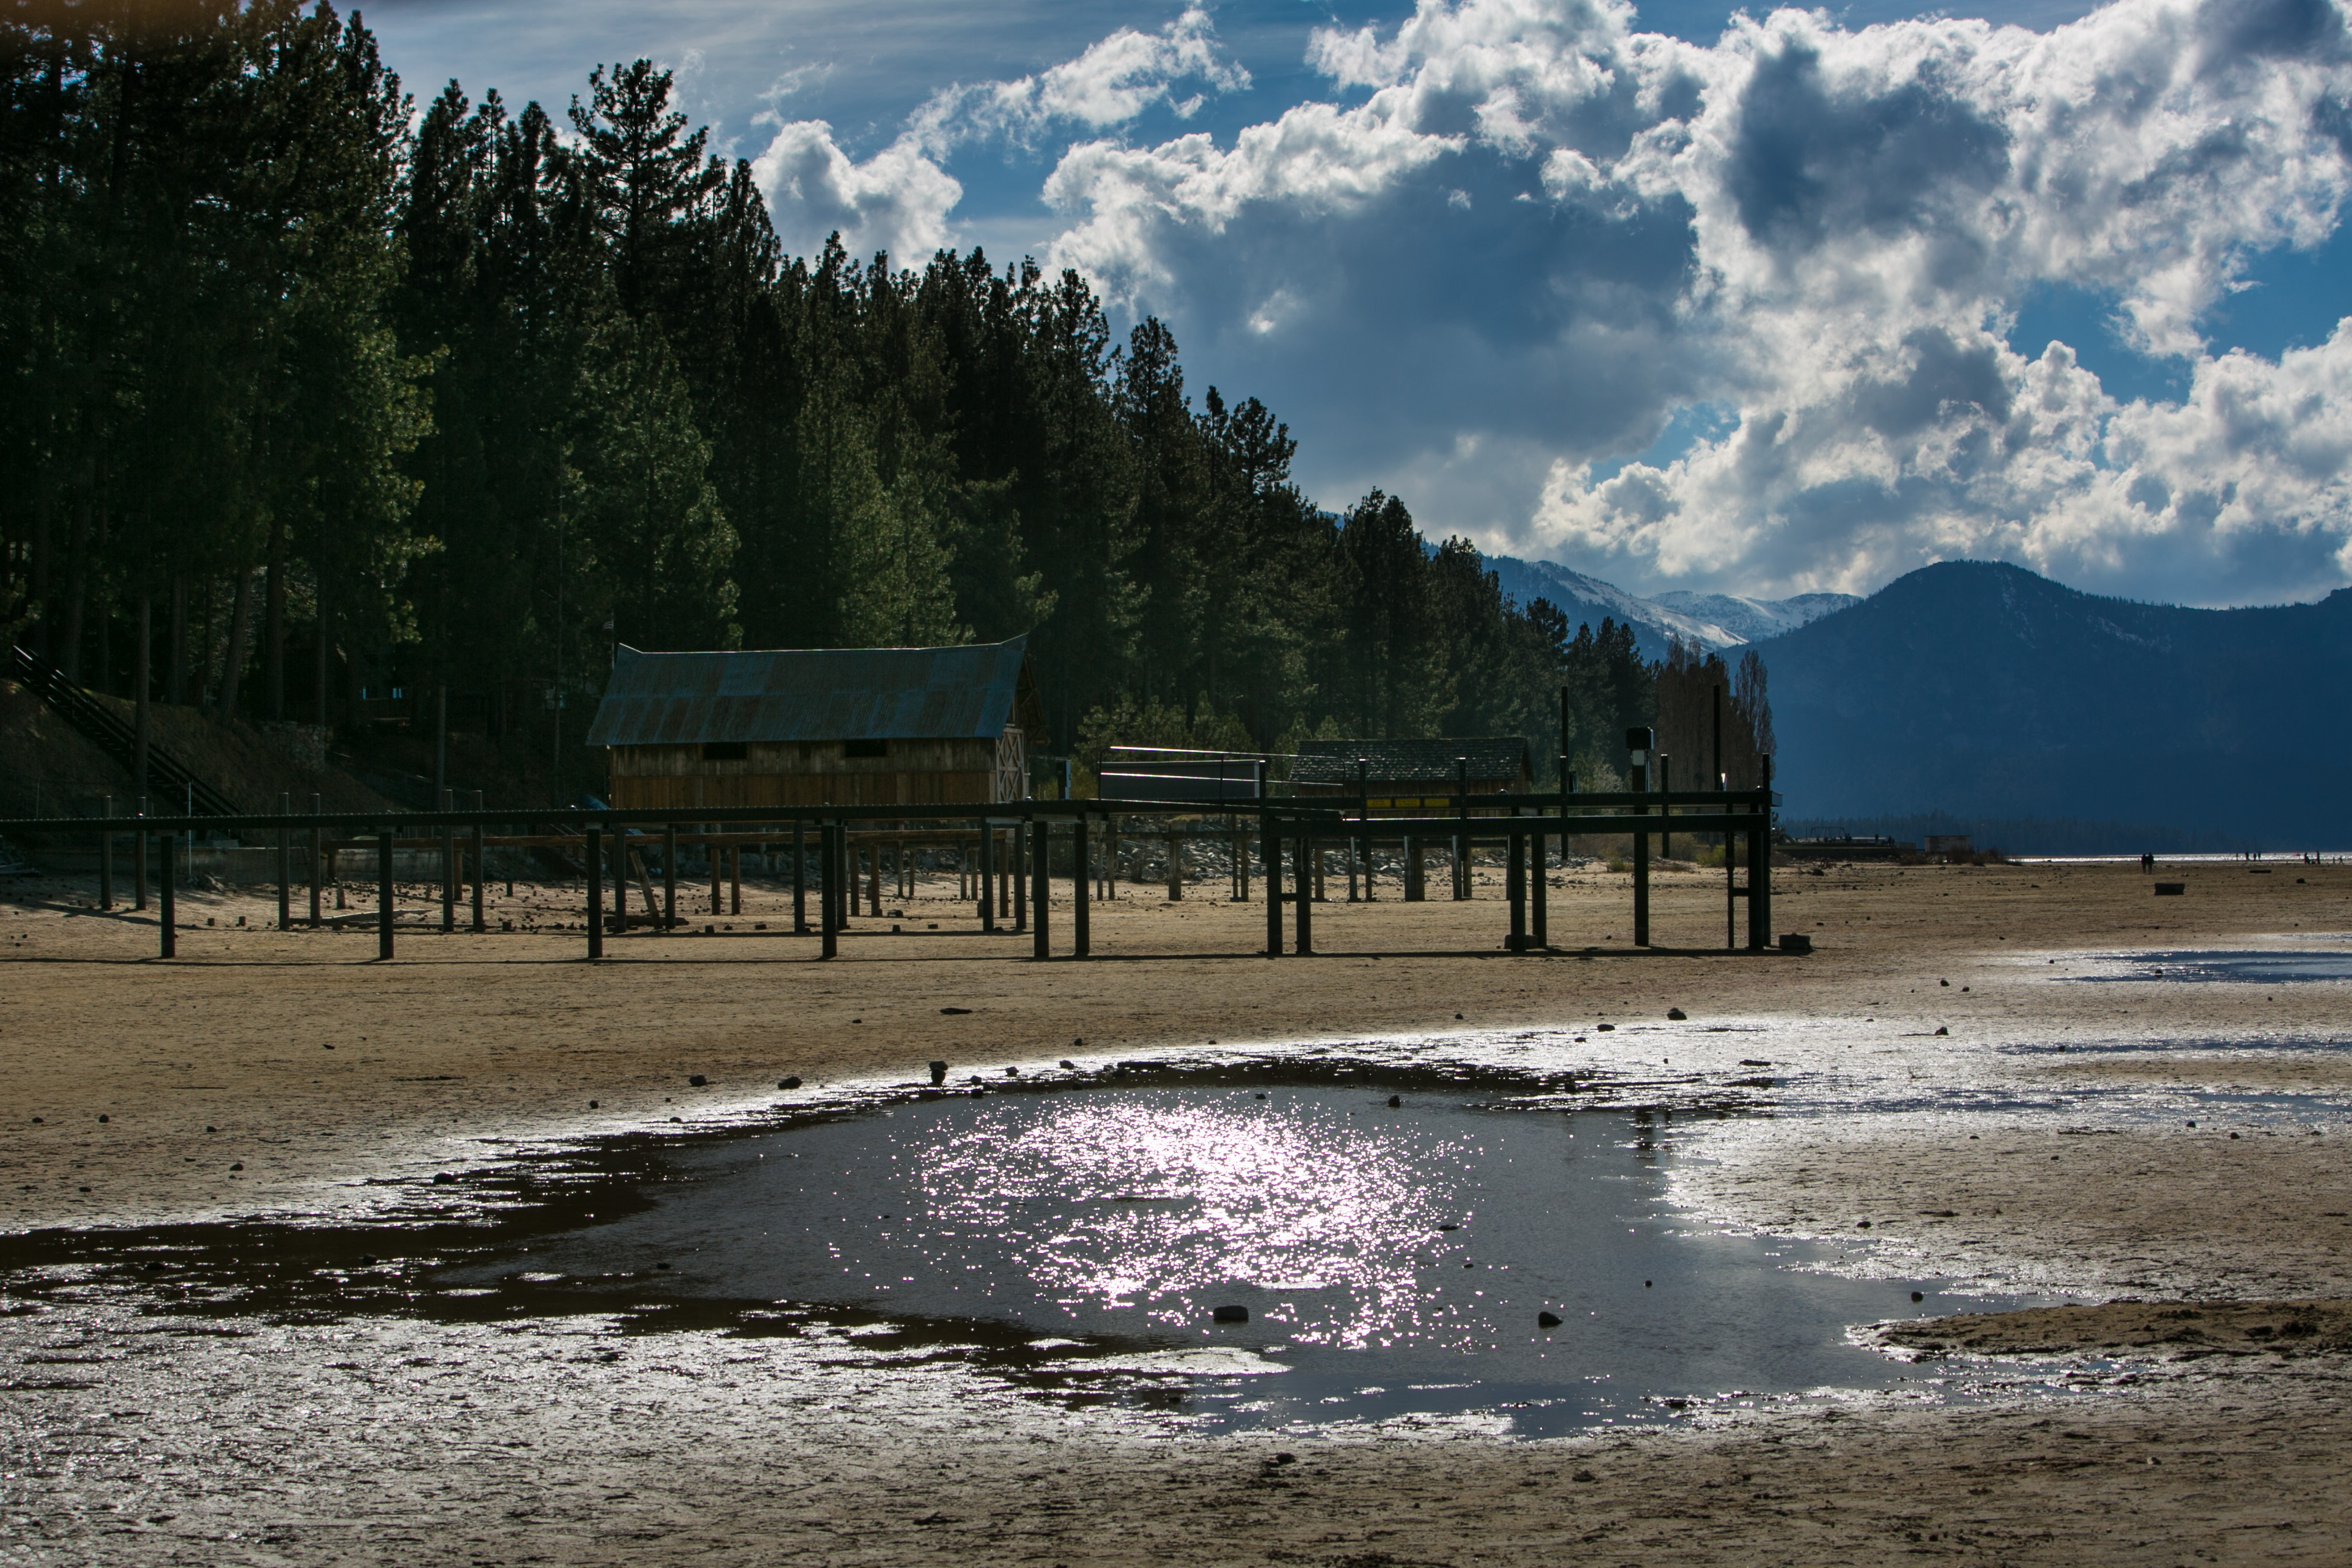 Without a series of Pacific storms reaching this high-elevation lake, water levels reached record low